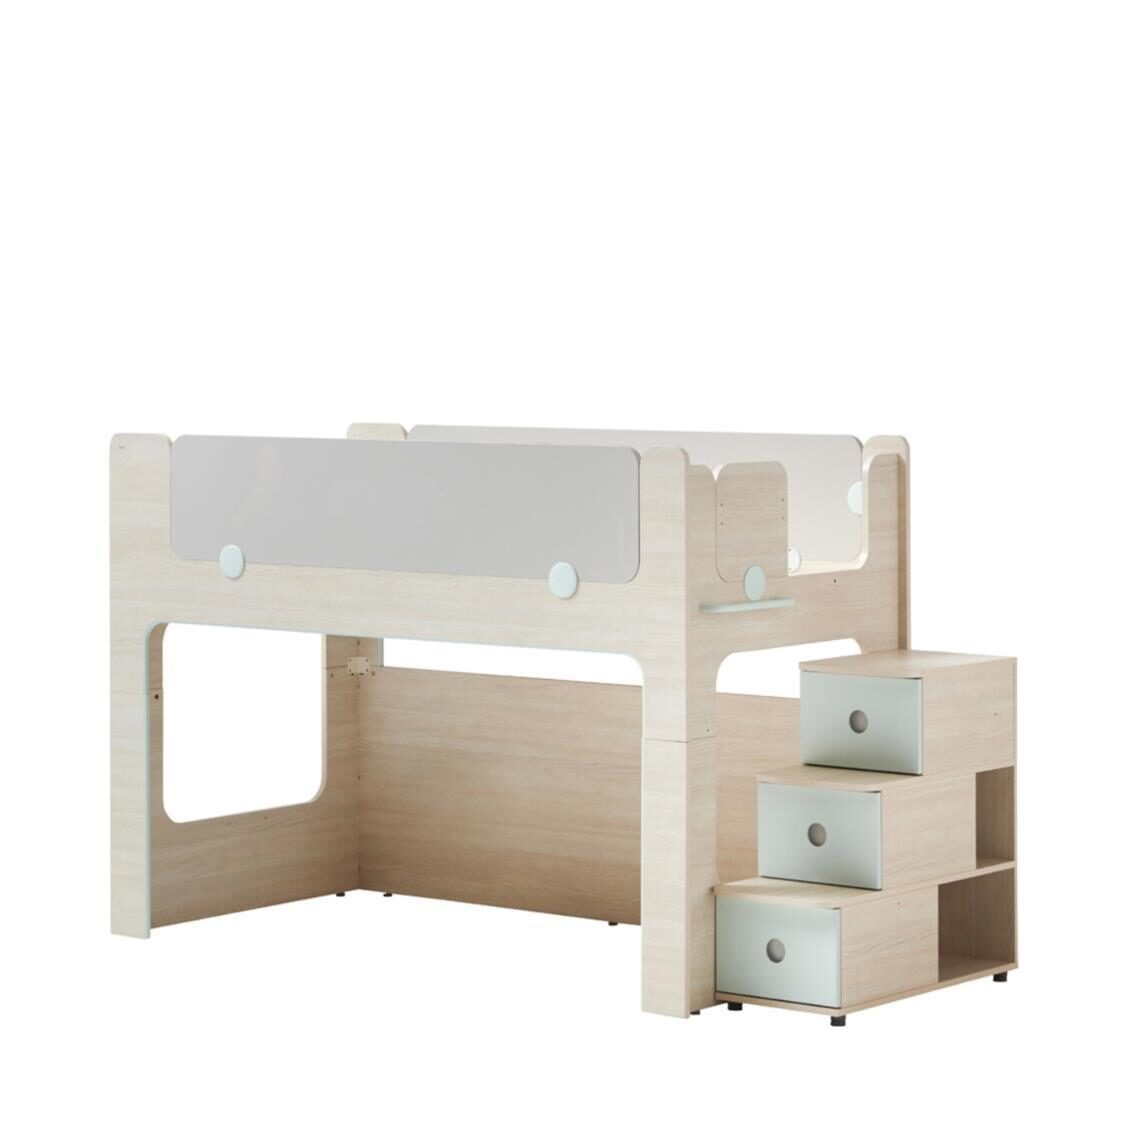 Cabin Bunk Bed Stairs Cabinet OSLA Olmless Ruster Light Aqua